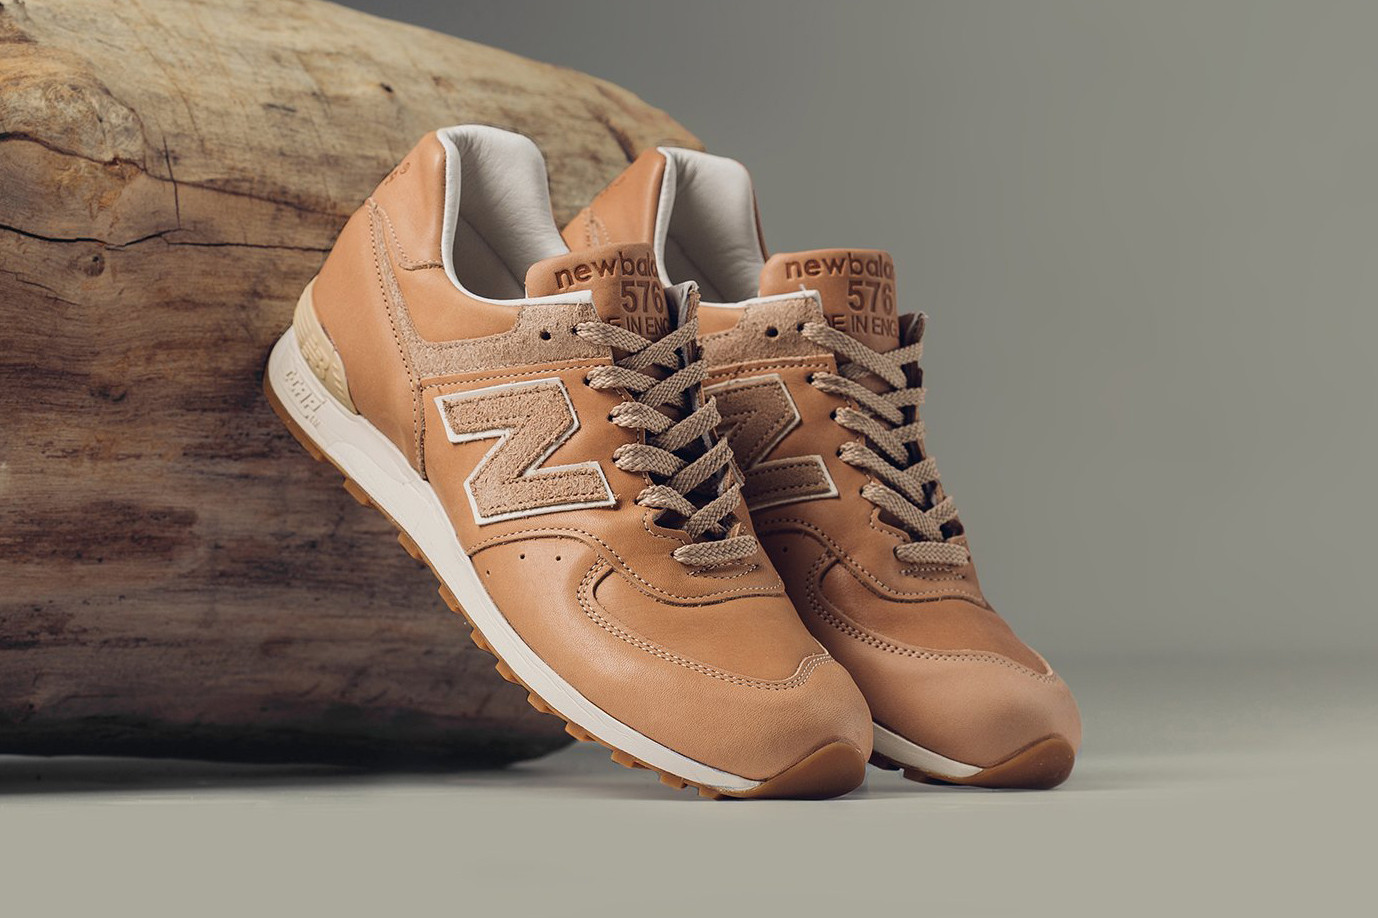 New Balance 576 Vegetable-Tanned